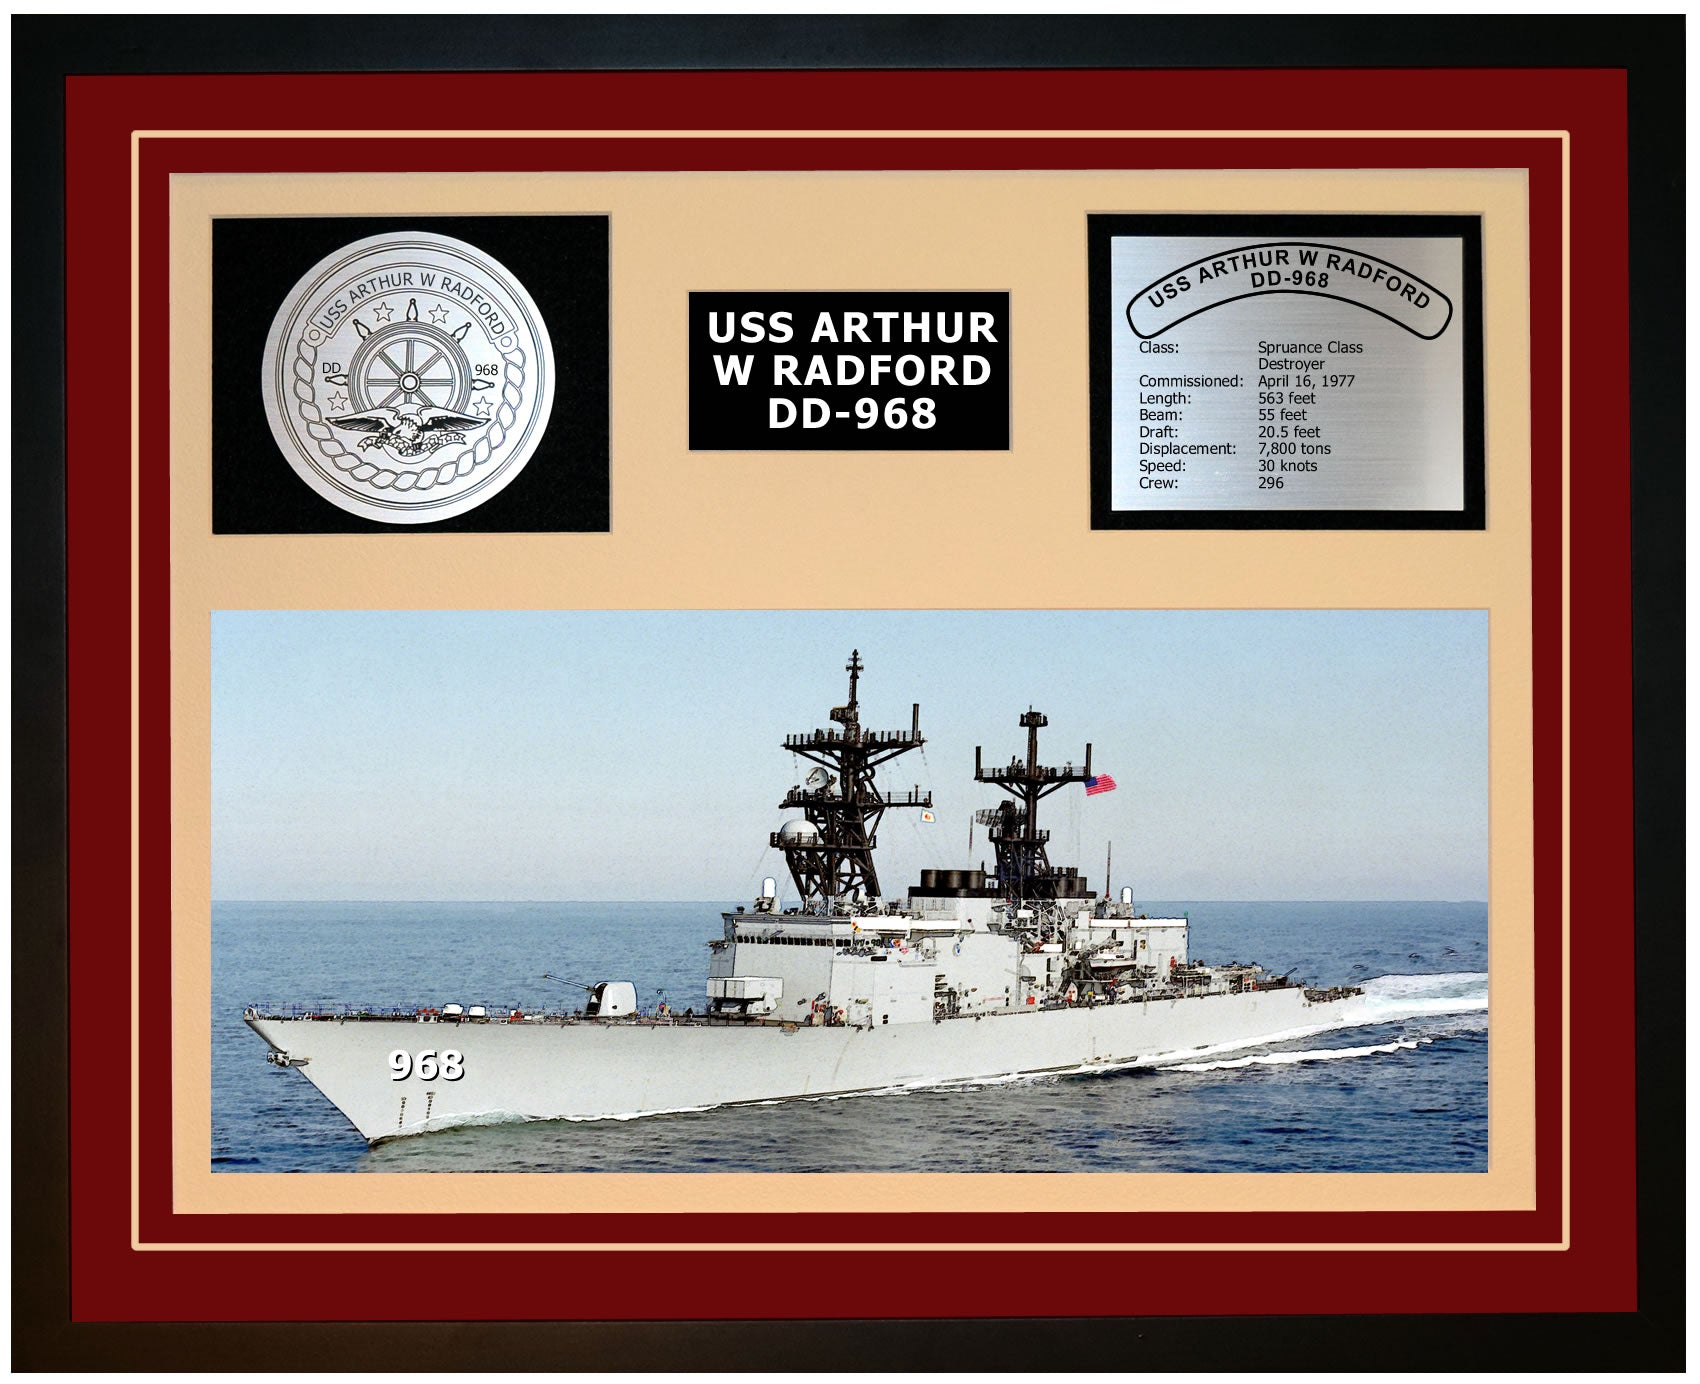 USS ARTHUR W RADFORD DD-968 Framed Navy Ship Display Burgundy